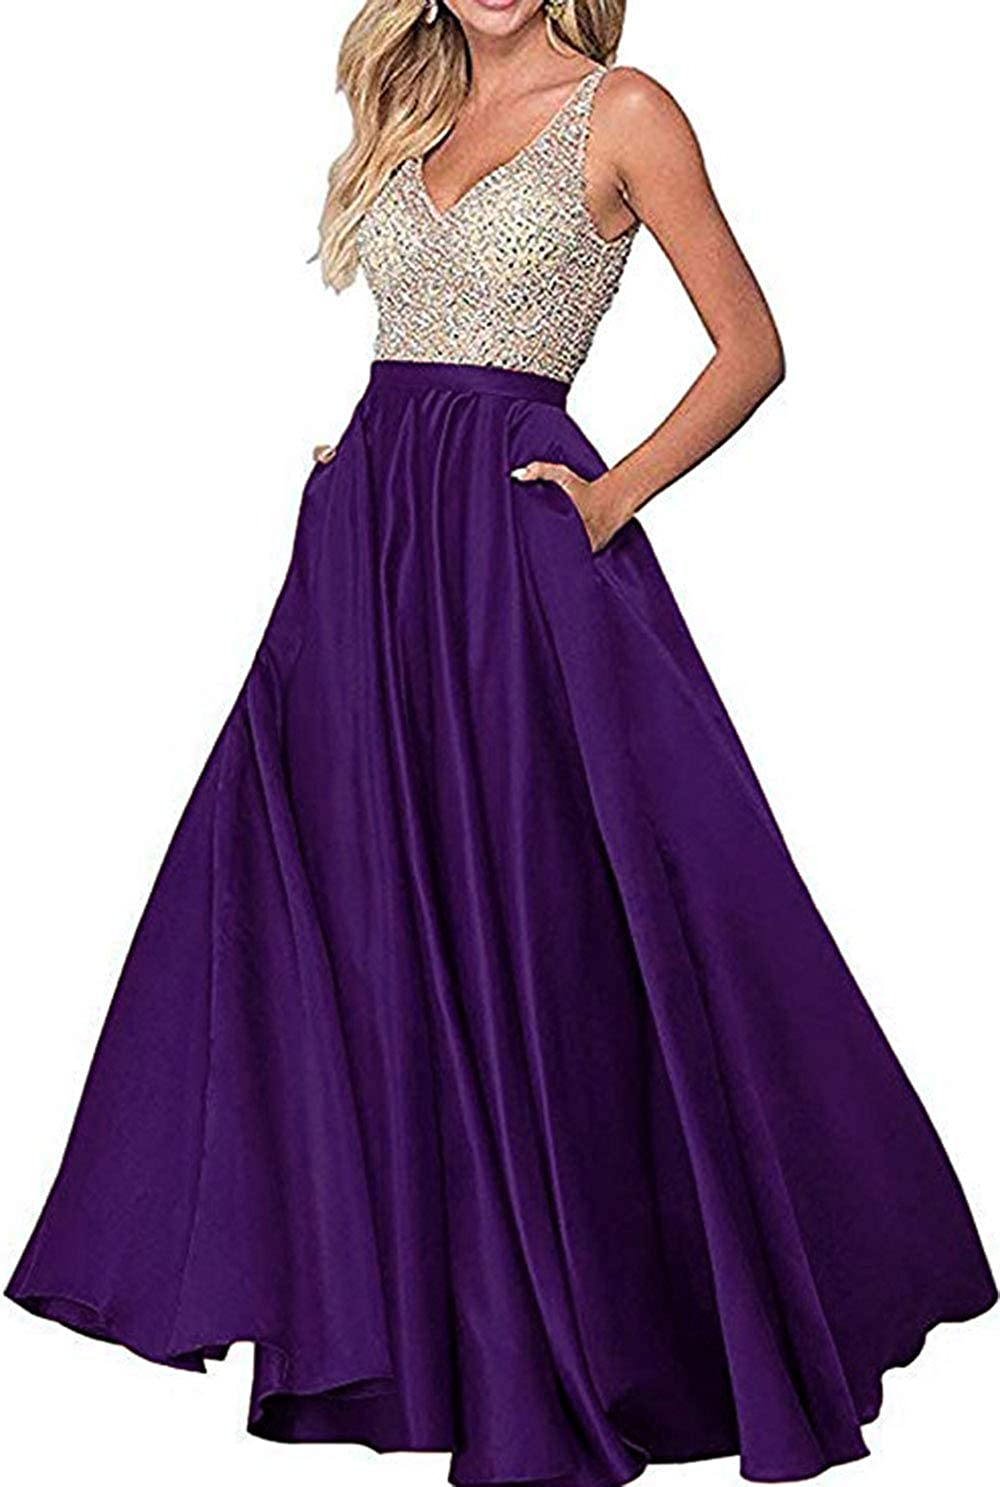 Dark Purple Rmaytiked Womens VNeck Beaded Bodice Long Prom Dresses A Line Satin Formal Evening Ball Gowns with Pockets 2019 New